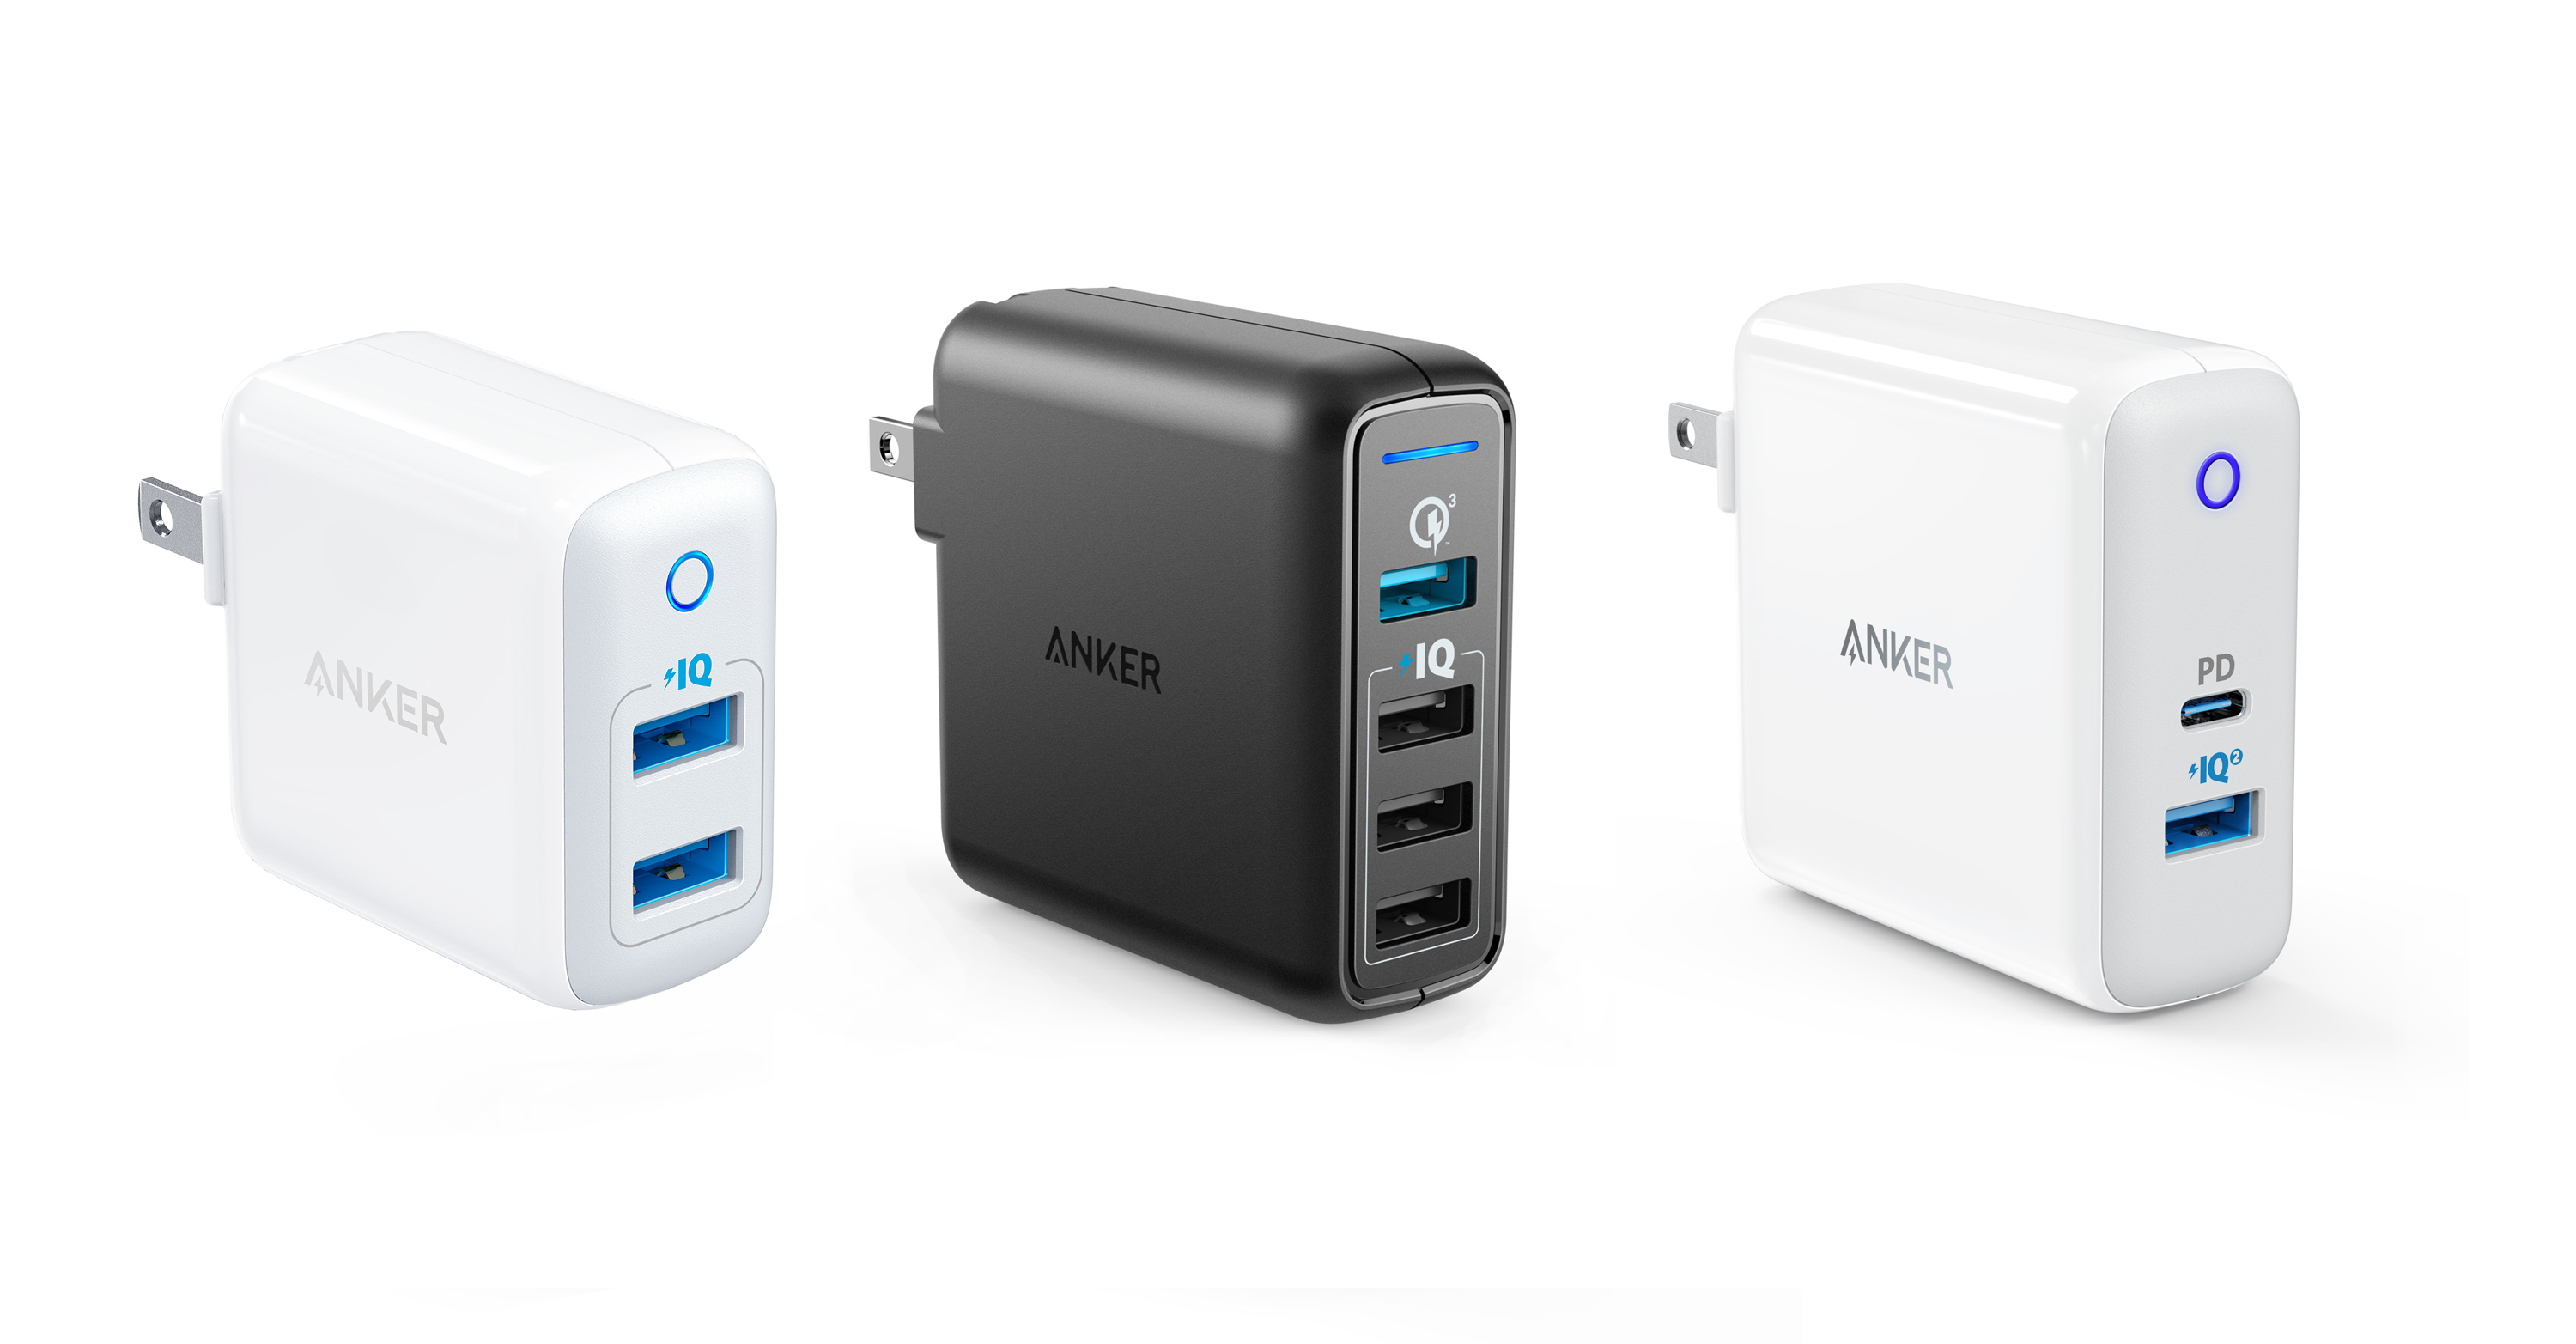 Anker-plugs-charger.jpg?mtime=20181116122236#asset:103768